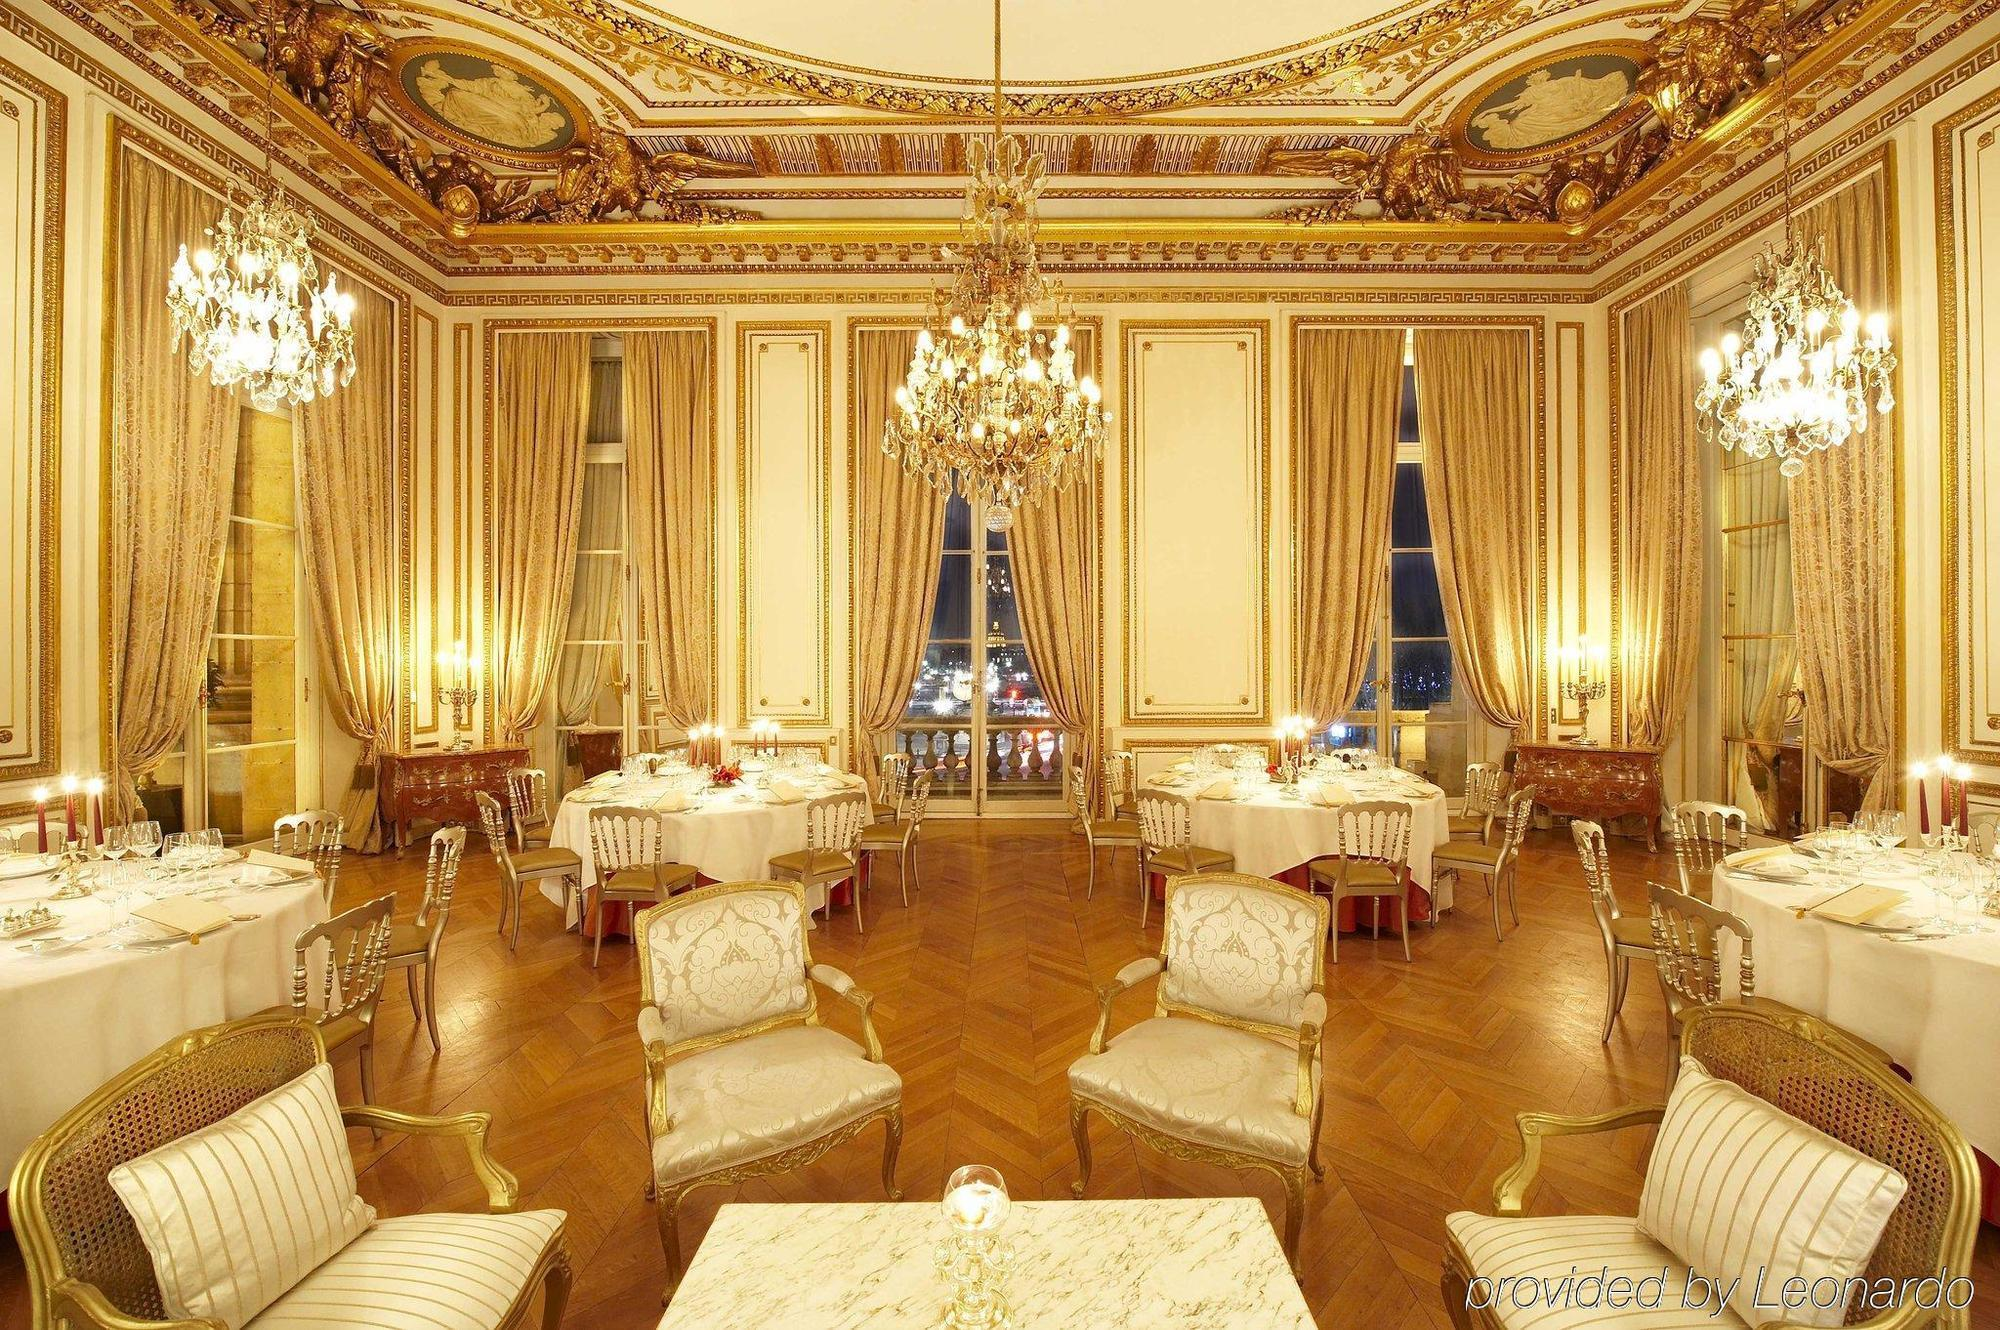 Hotel de crillon paris for Salon du design paris